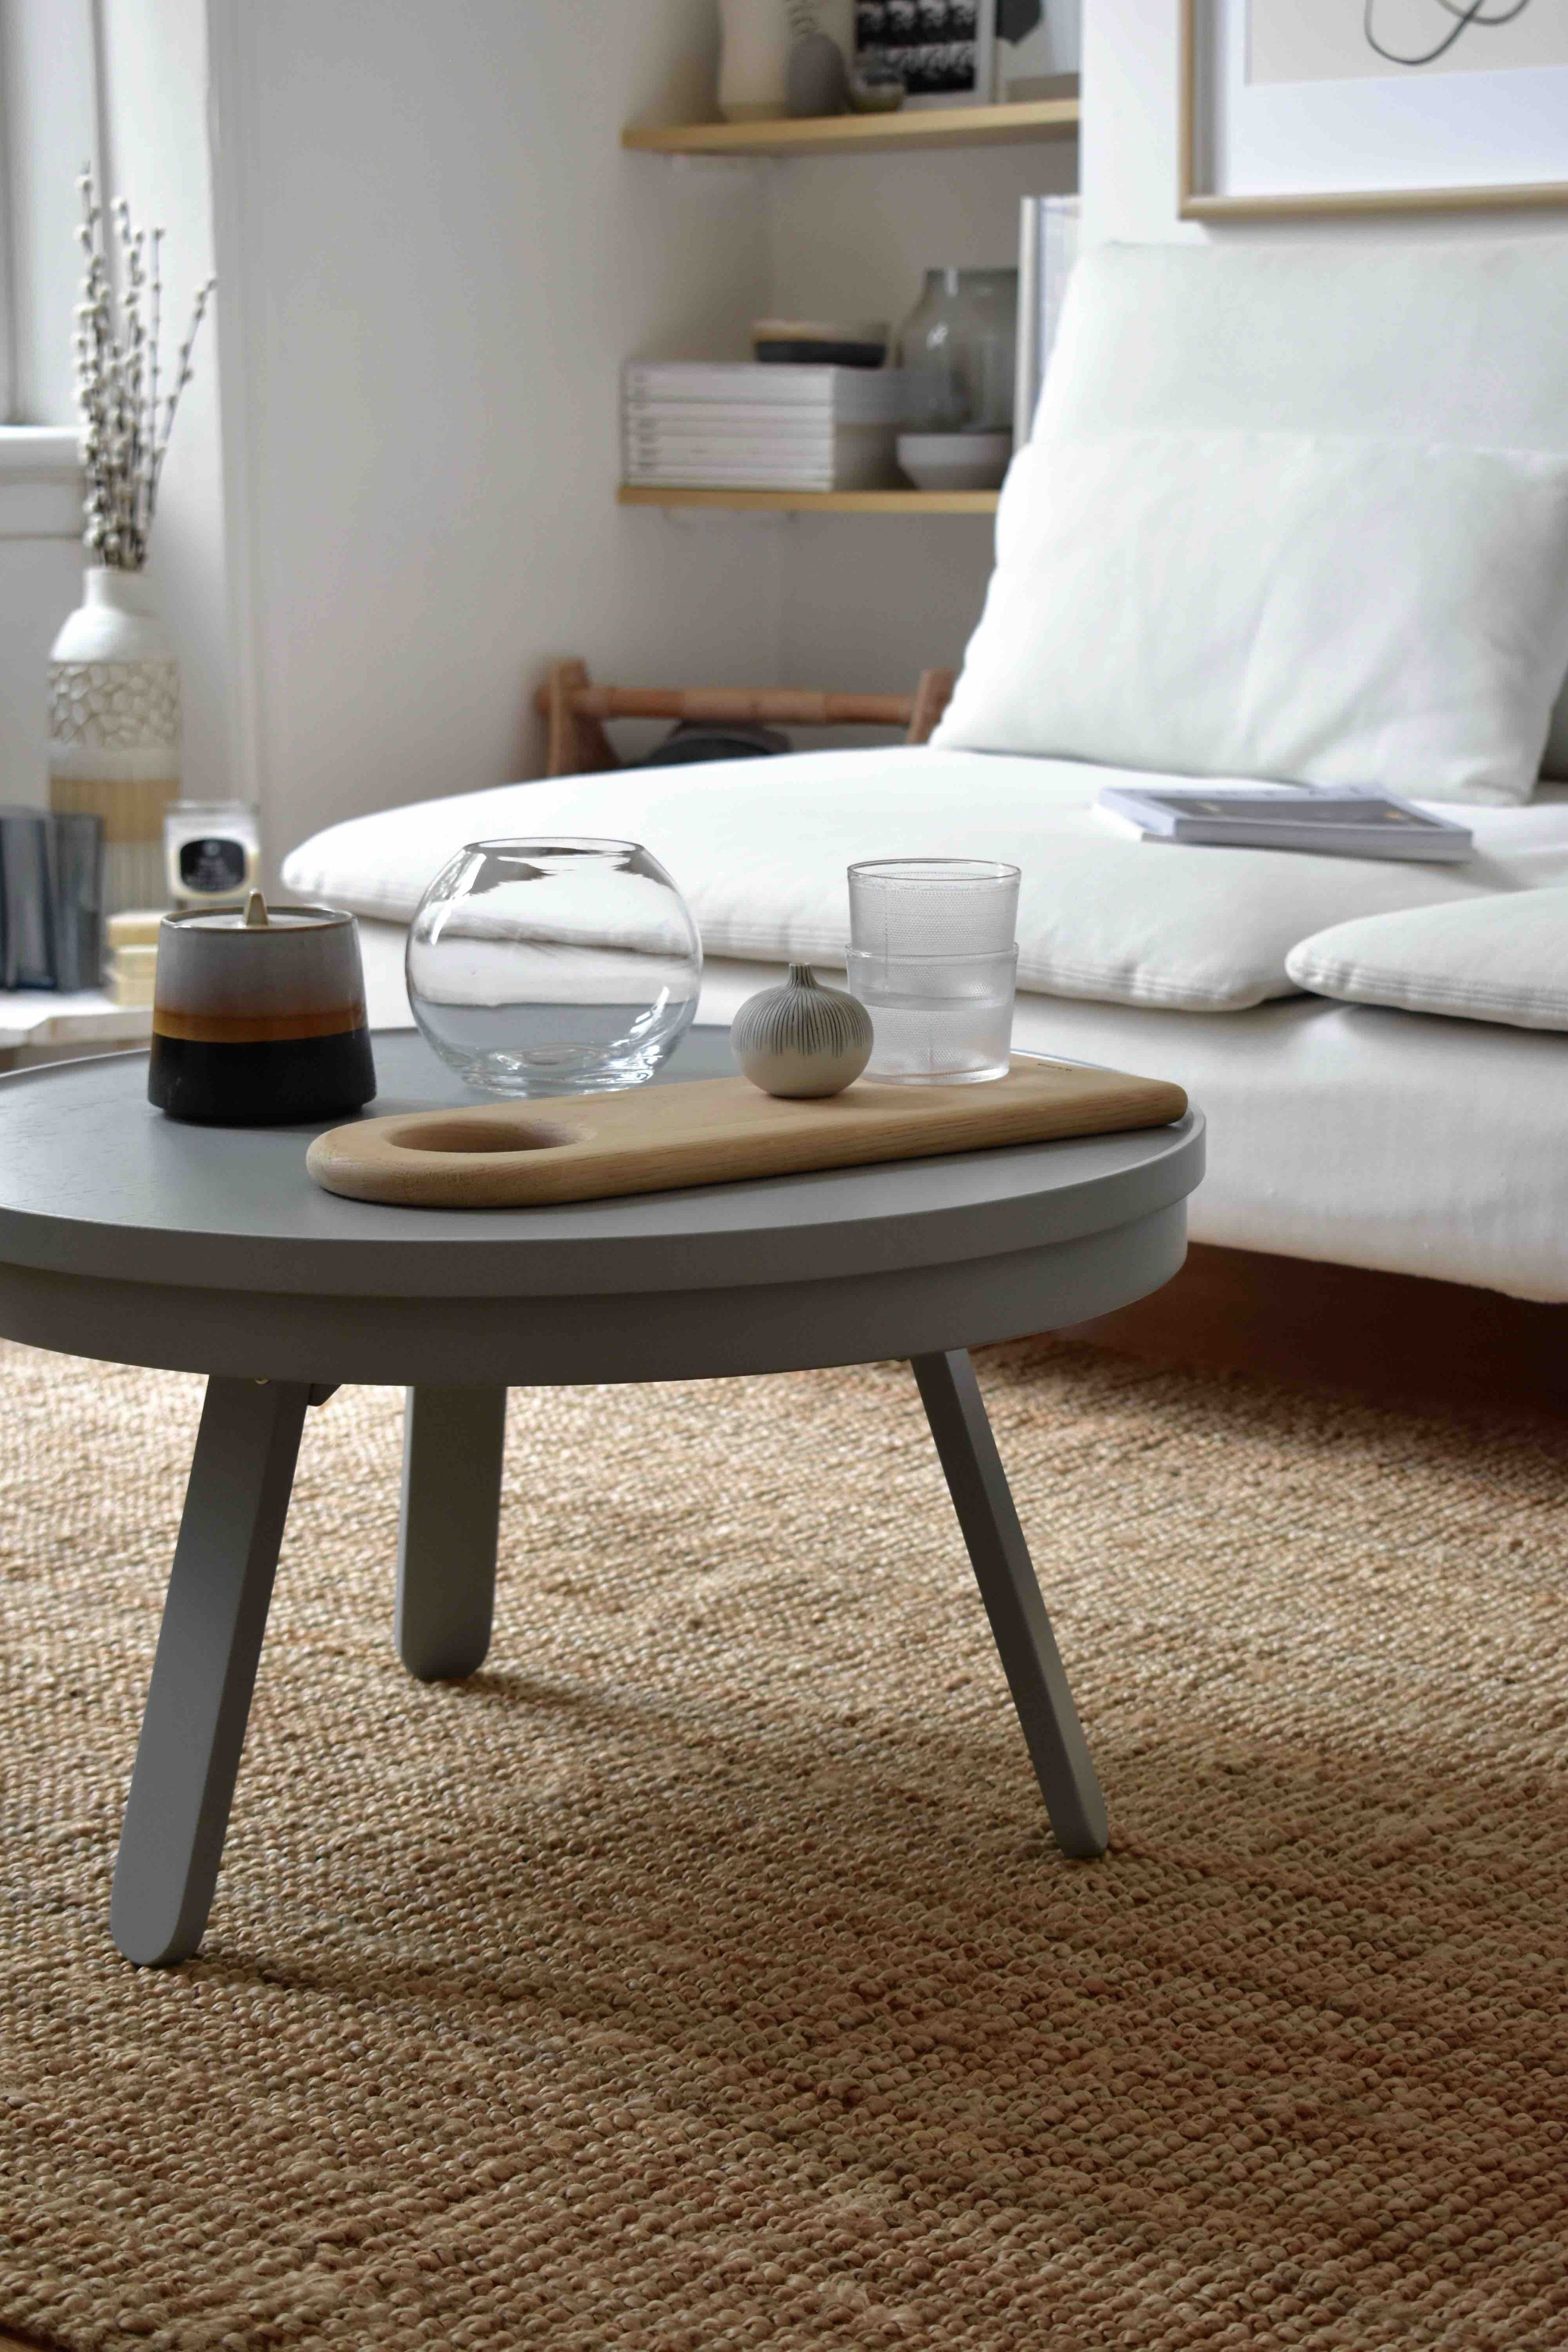 Minimal Center Table Table Storage Table Coffee Table [ 5000 x 3333 Pixel ]